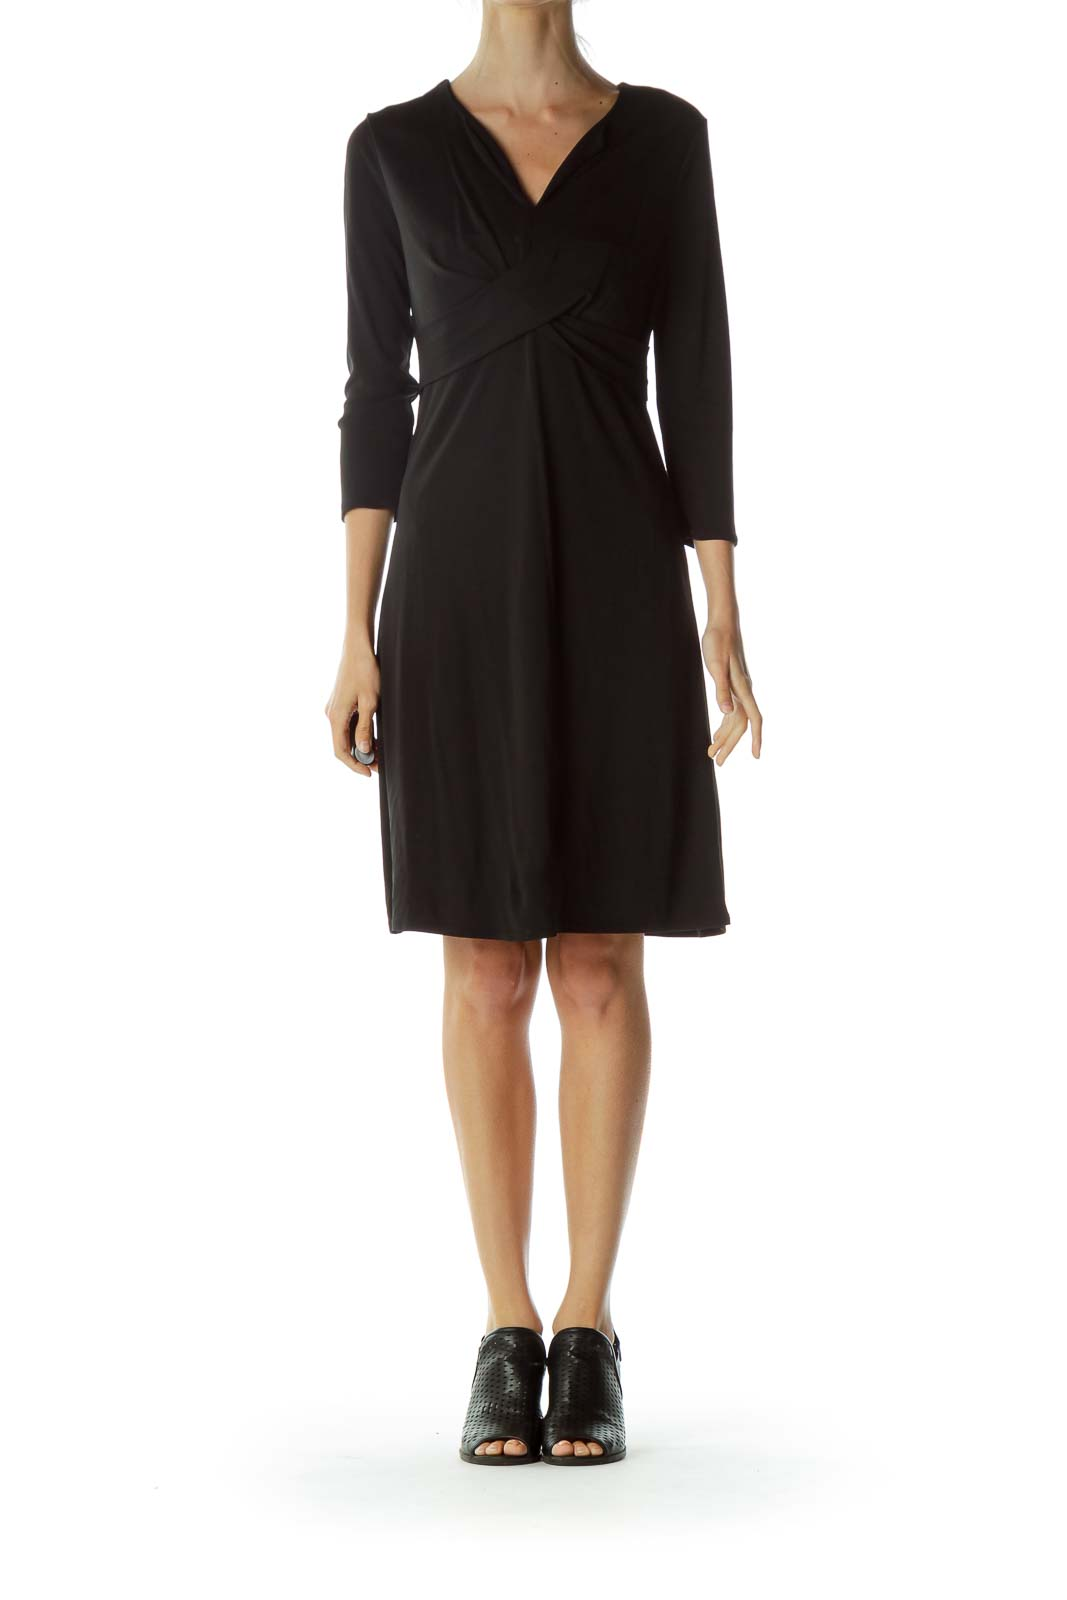 Black V-Neck Wrap Detail Work Dress